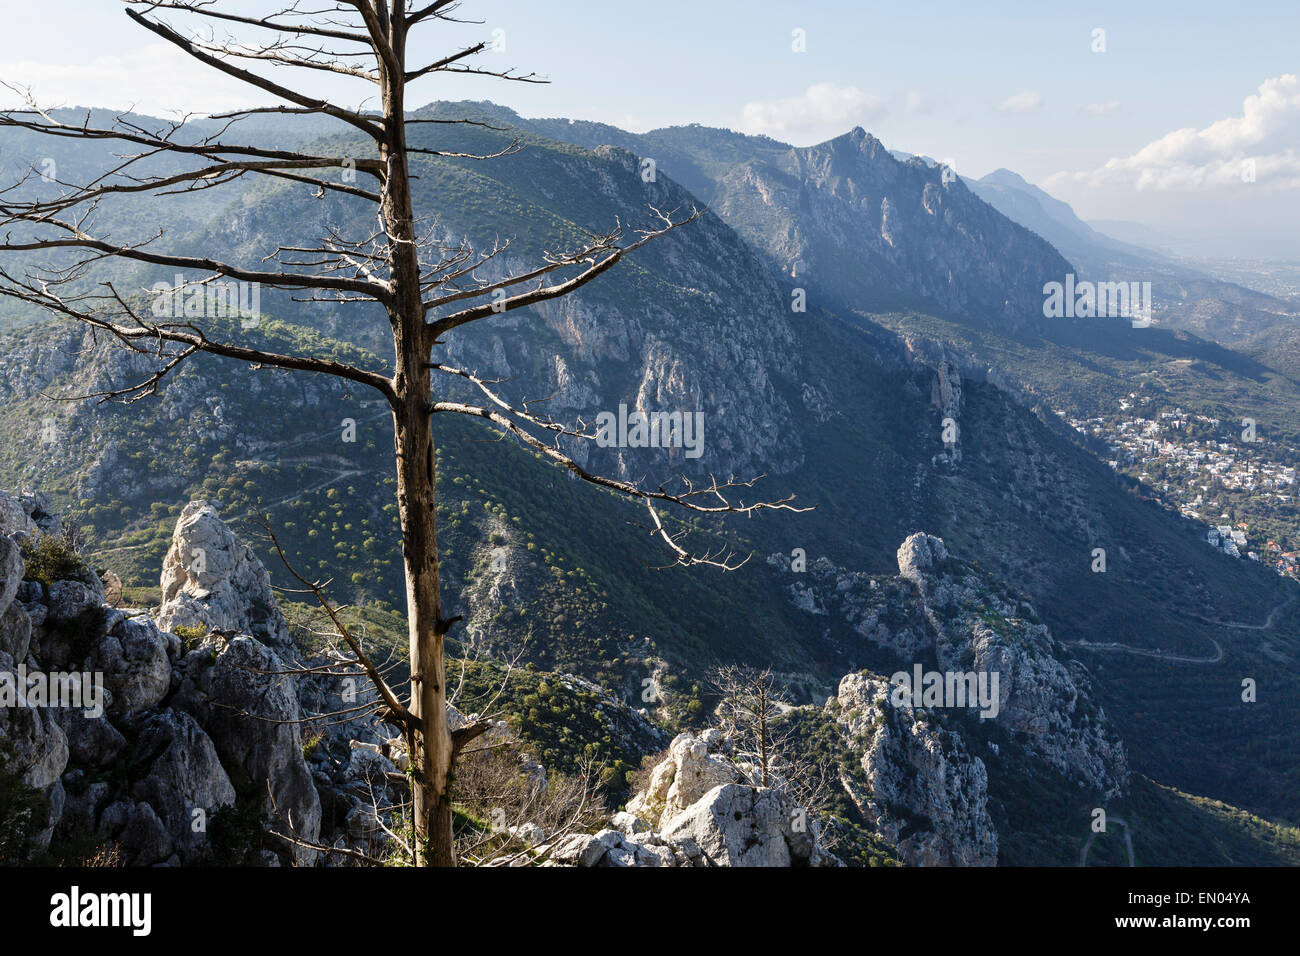 The Kyrenia Mountain Range from St Hilarion Castle, near Girne (Kyrenia), Northern Cyprus - Stock Image